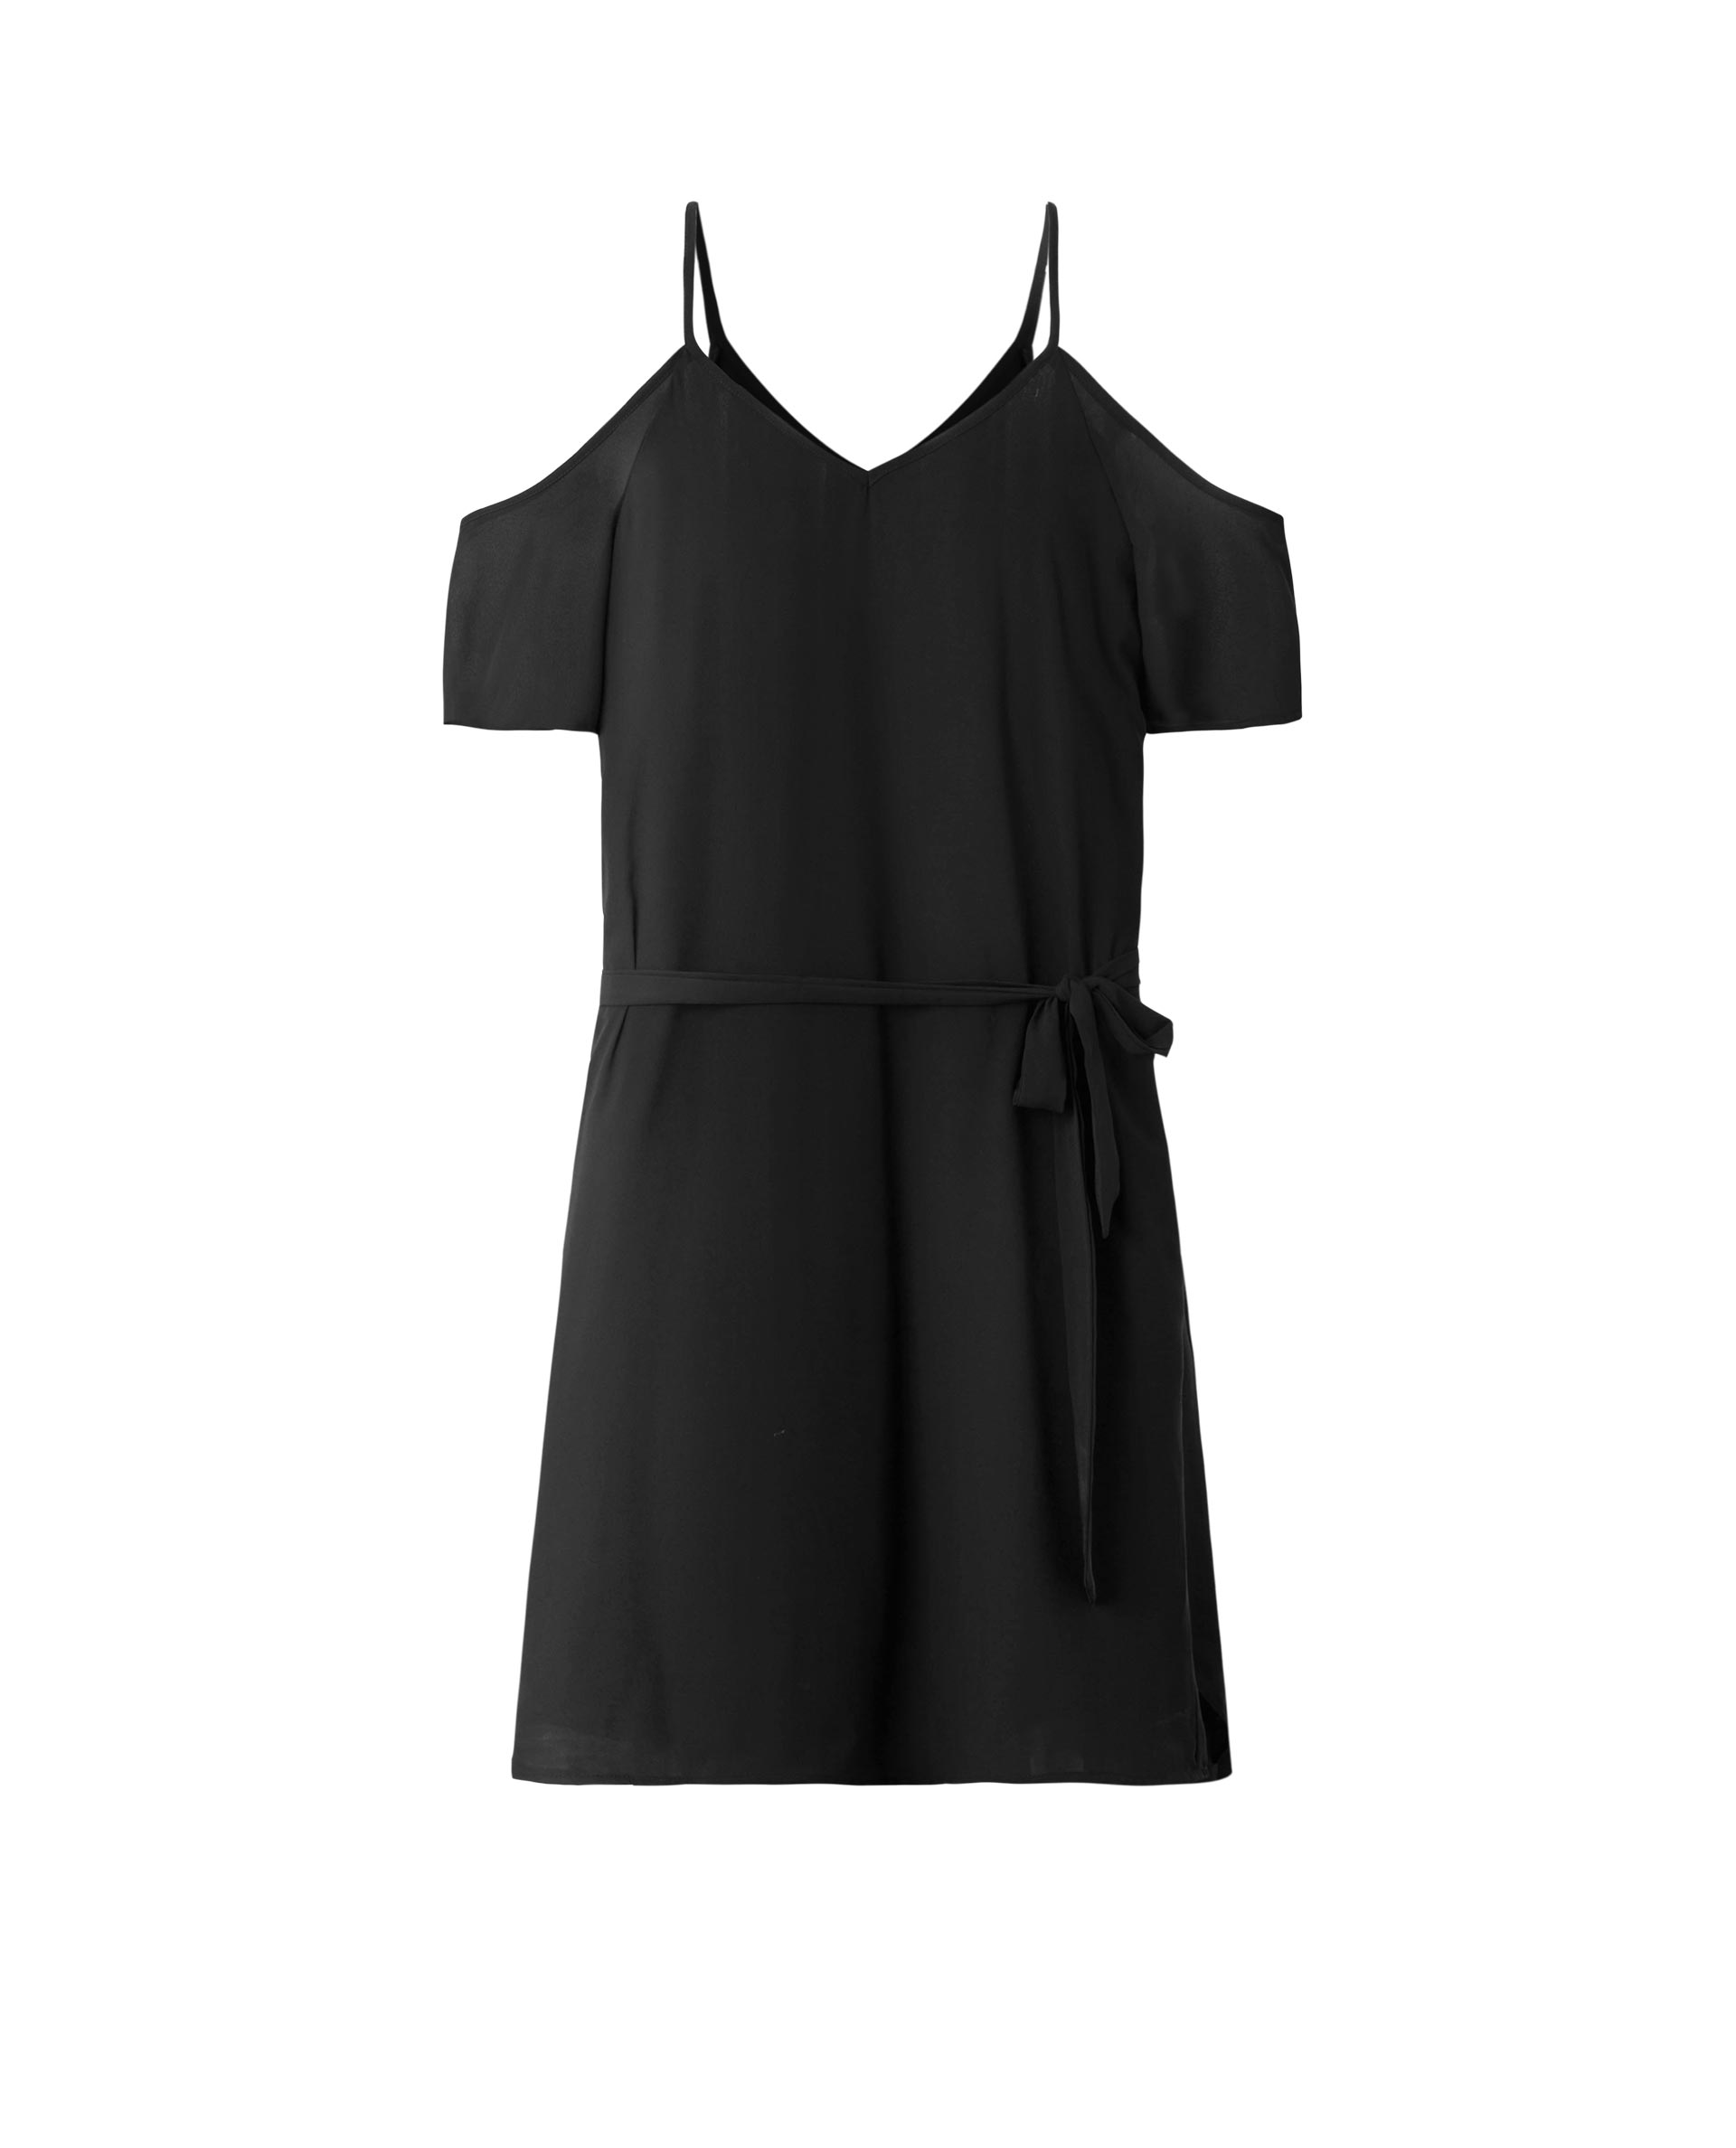 COLD SHOULDER DRESS (EBONY)